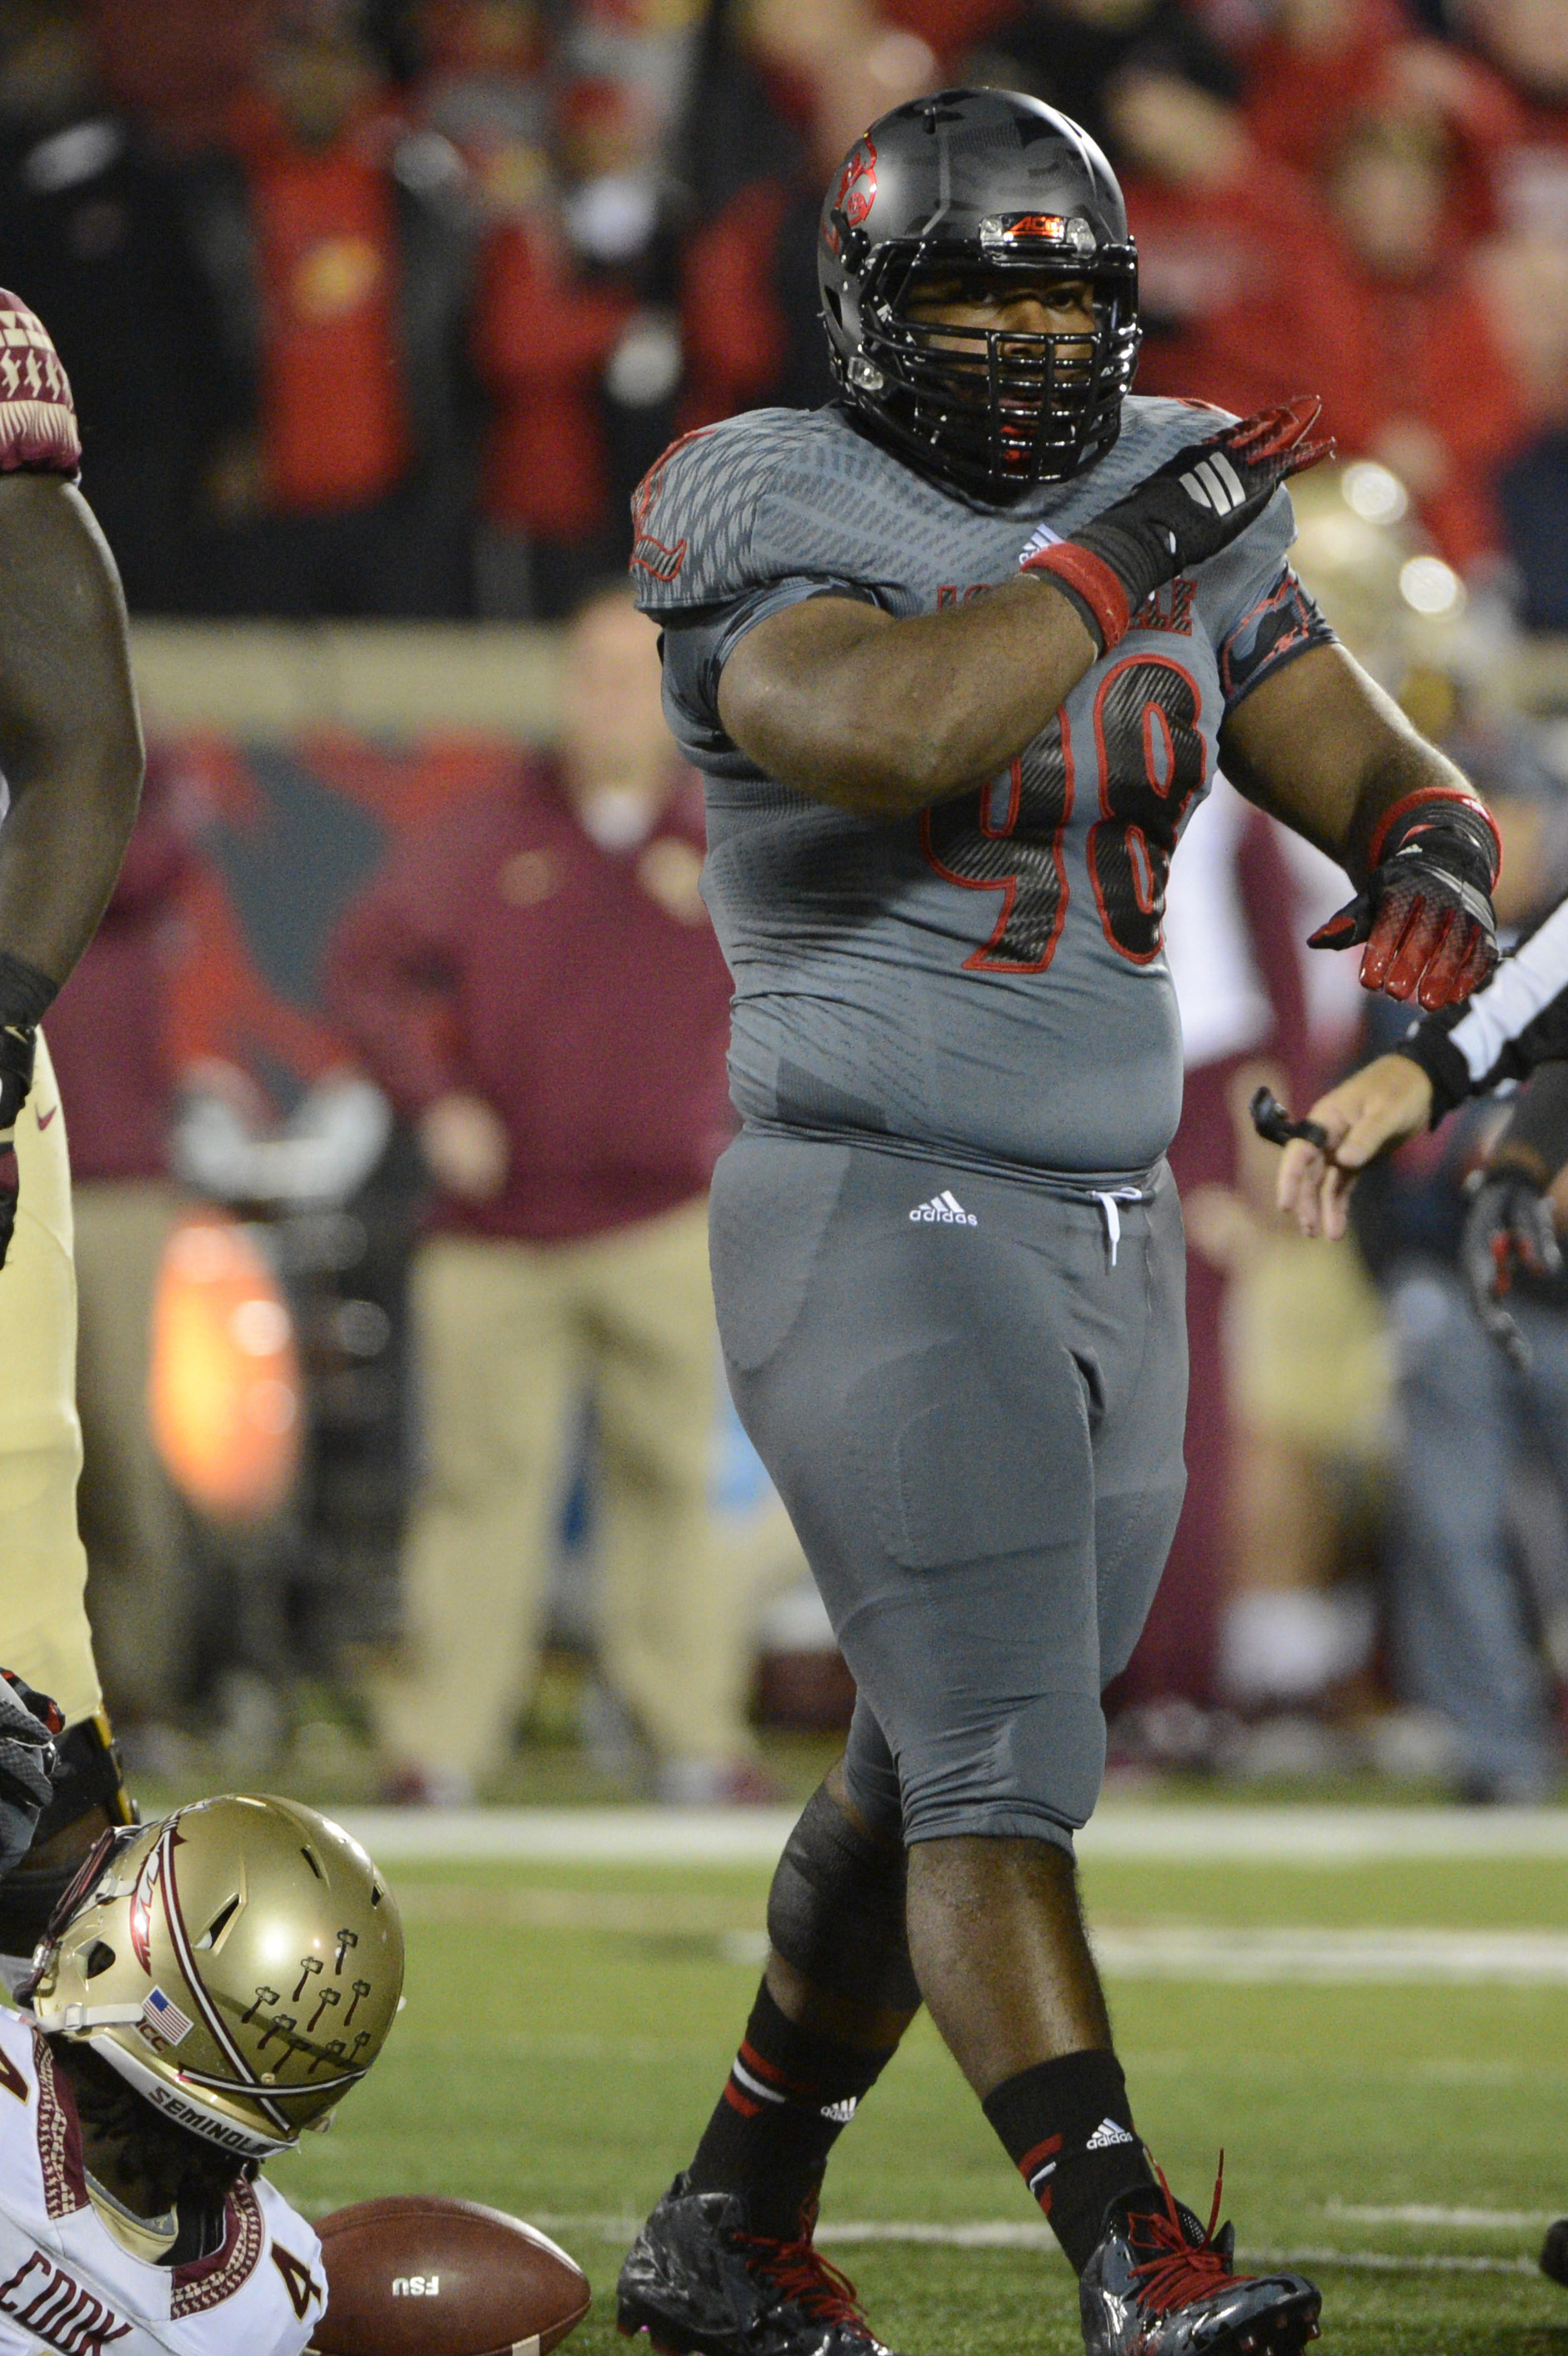 Sheldon Rankins hopes to be an impact player at the next level